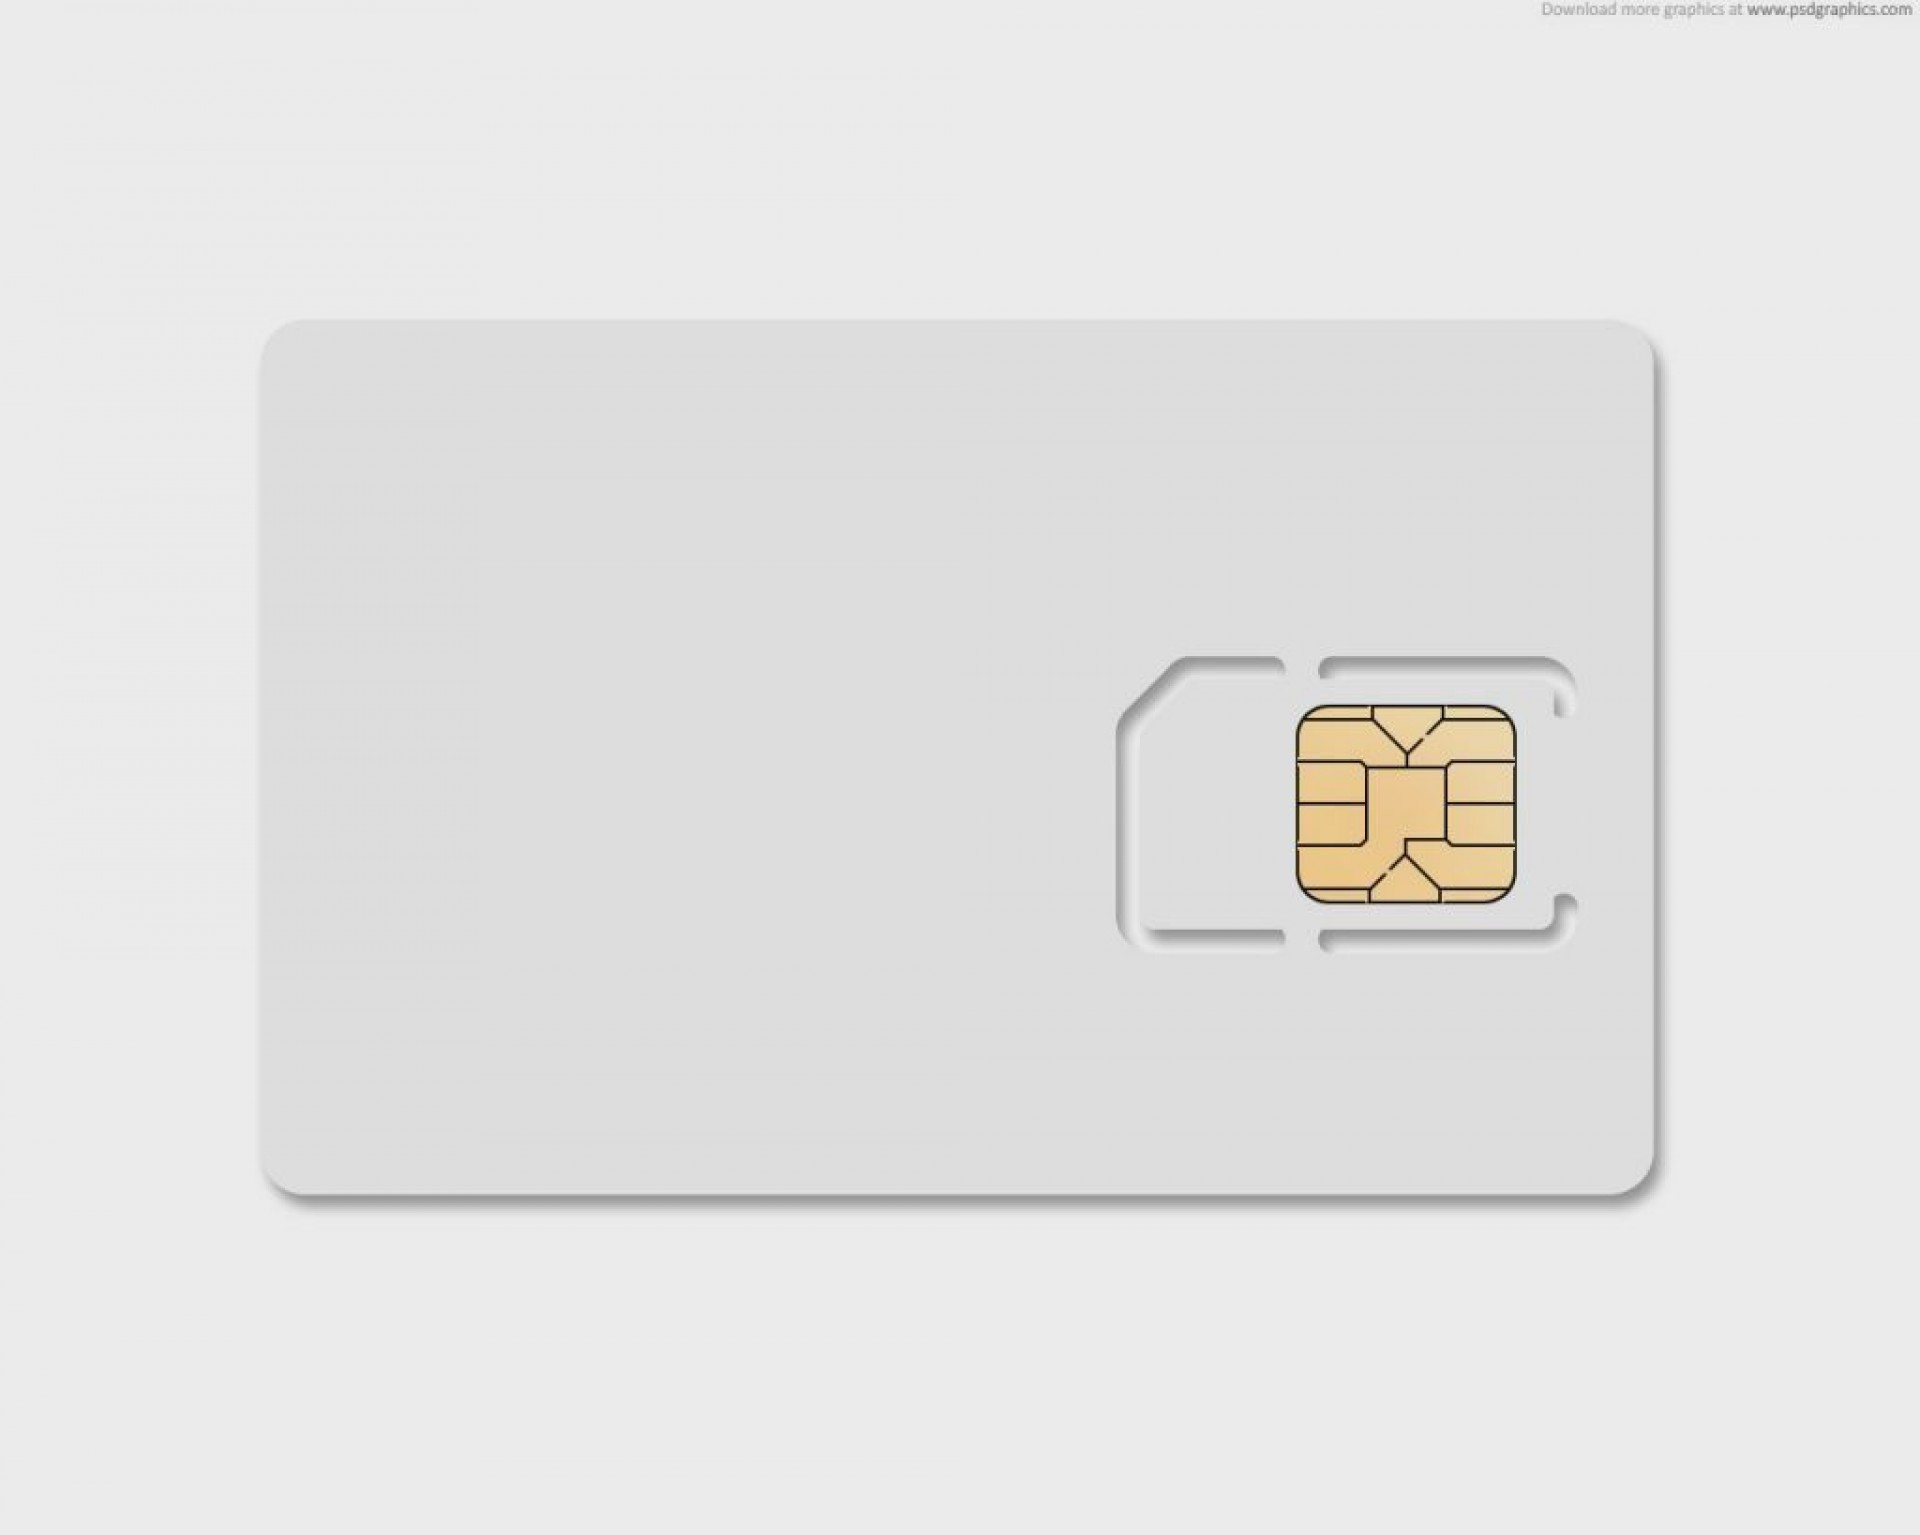 002 Staggering Blank Busines Card Template Photoshop High Resolution  Free Download Psd1920